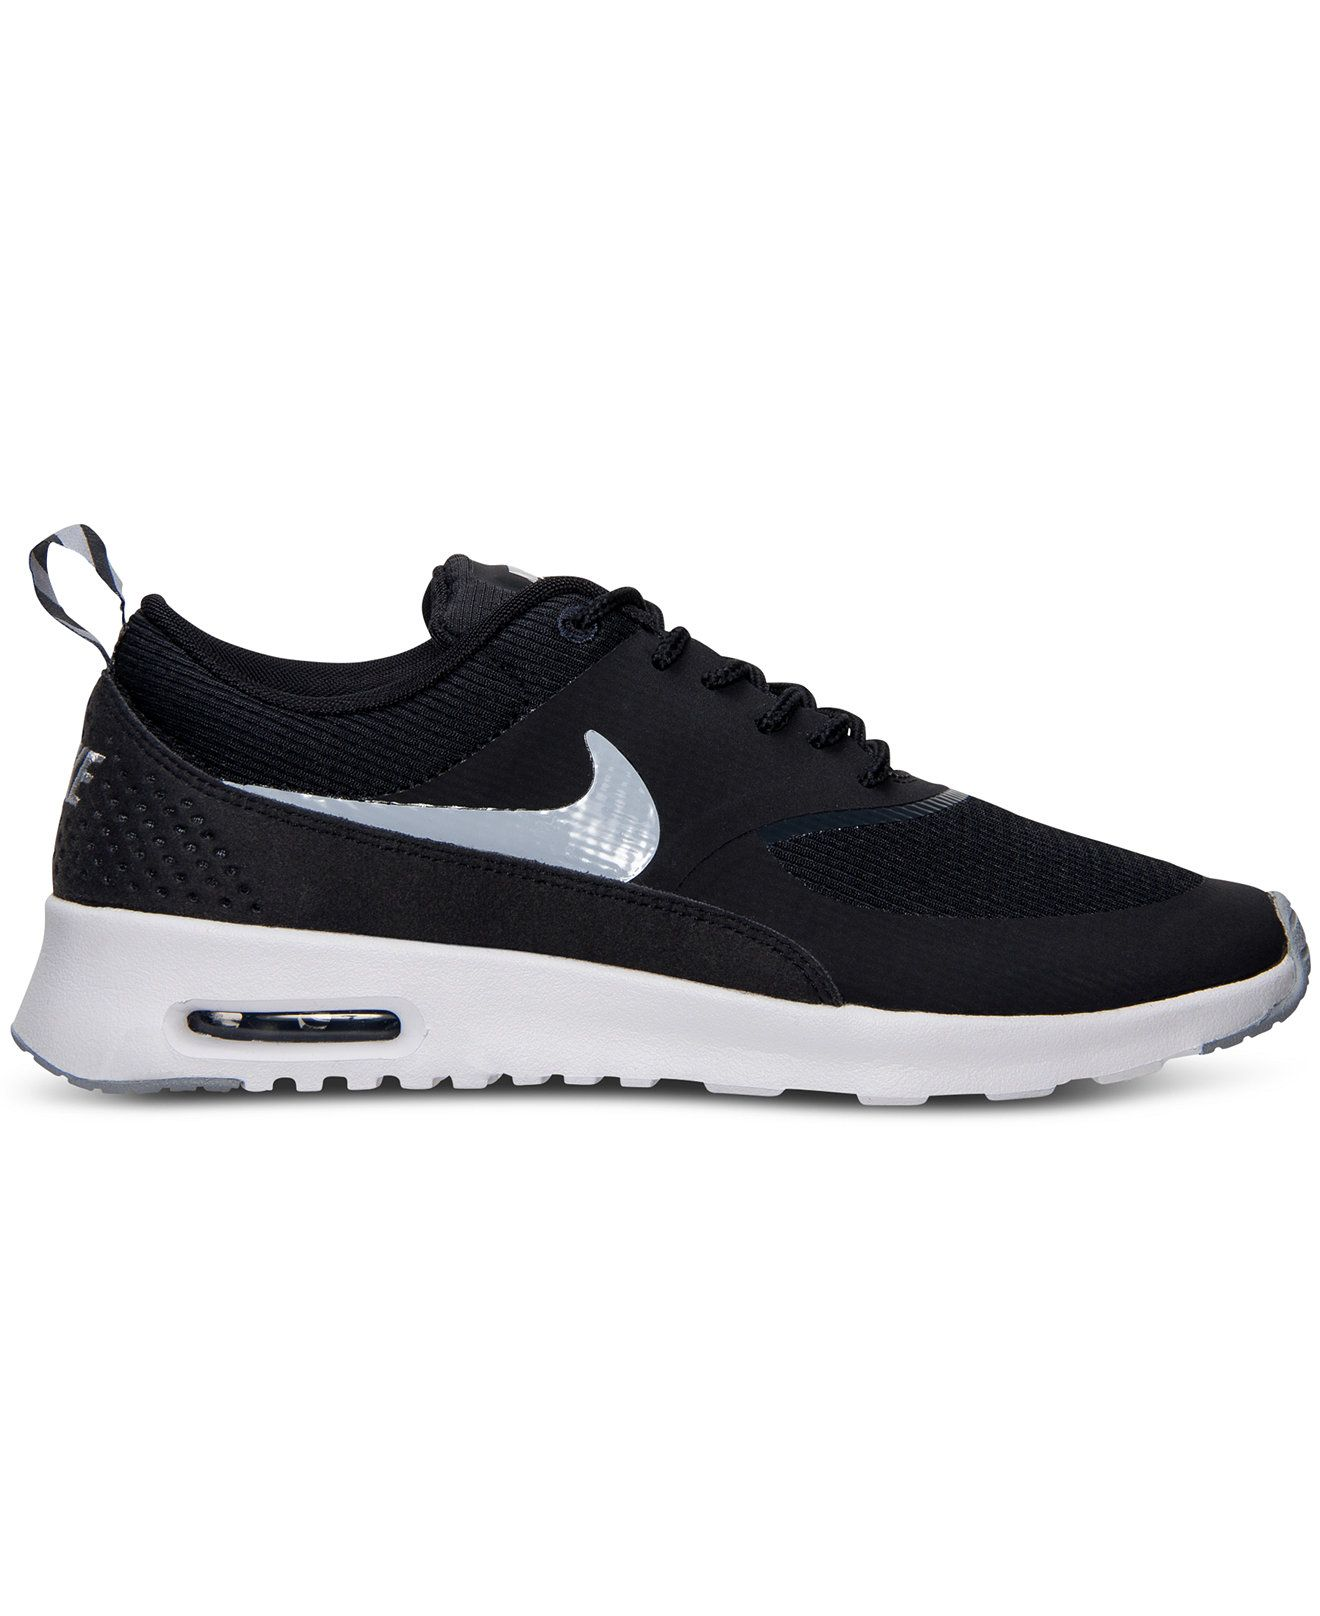 Nike Women's Air Max Thea Running Sneakers from Finish